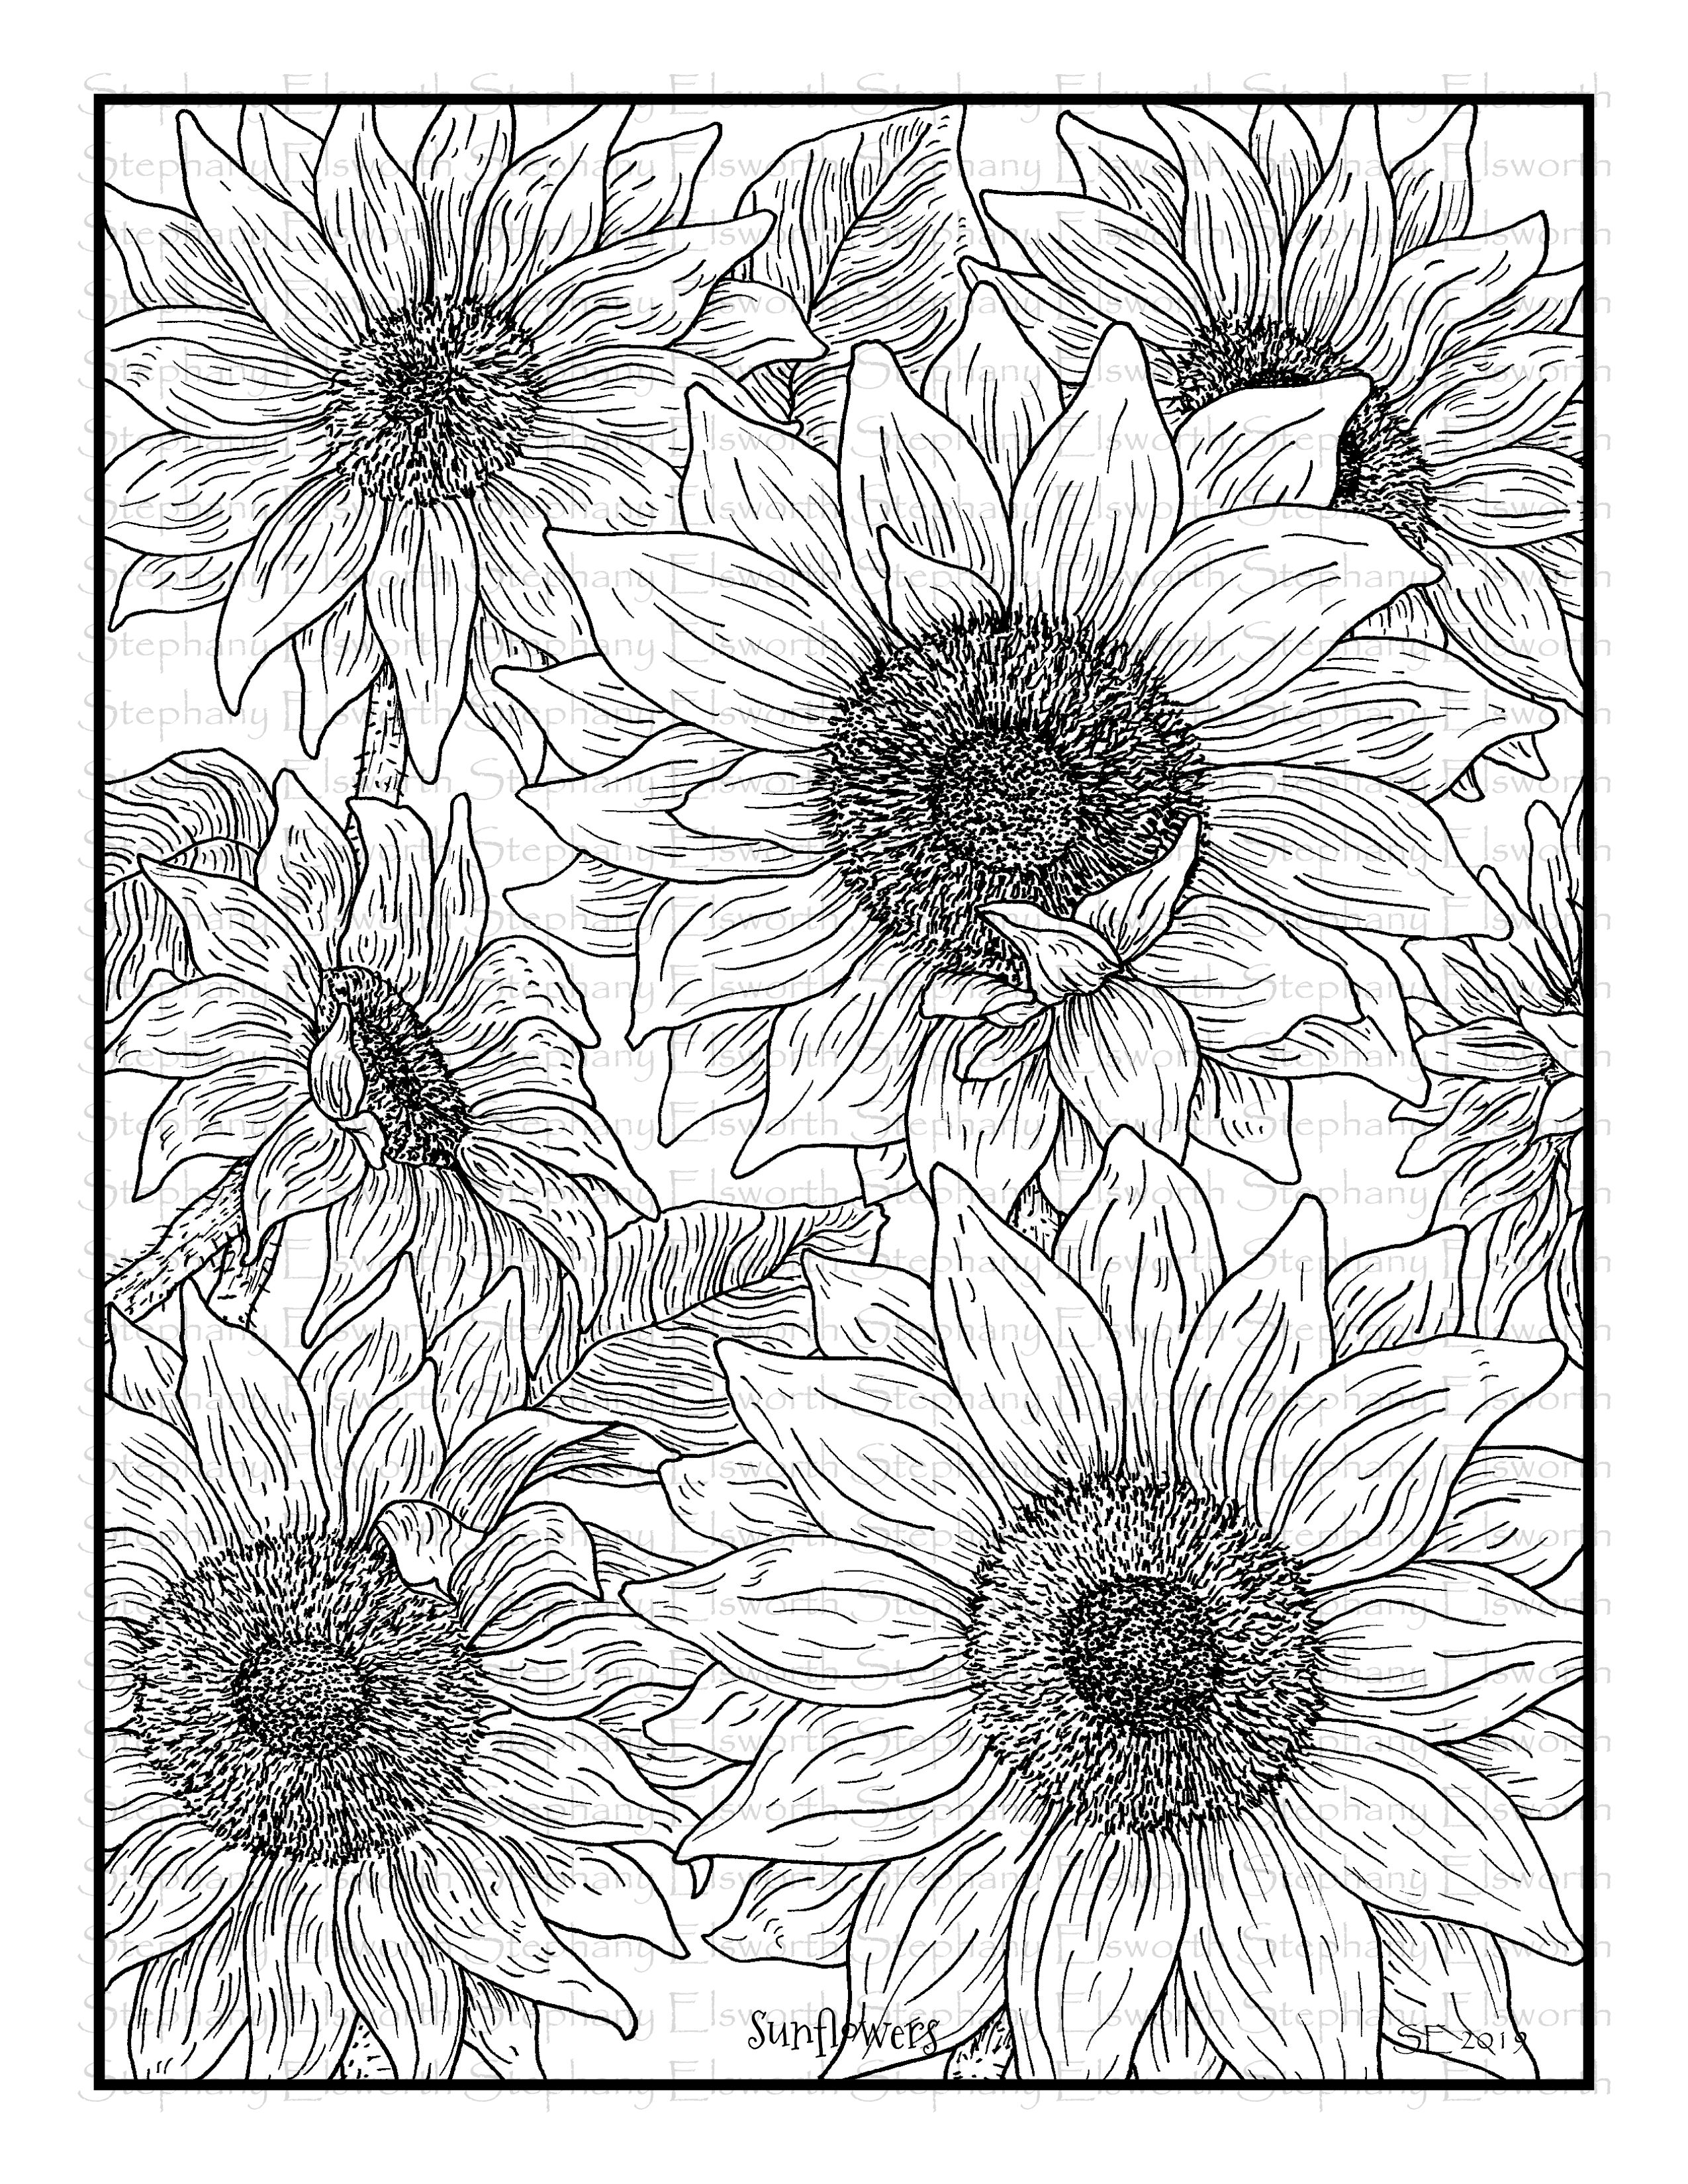 coloring pictures of sunflowers free photo sunflower silhouettes sky sunflowers sunflowers of coloring pictures